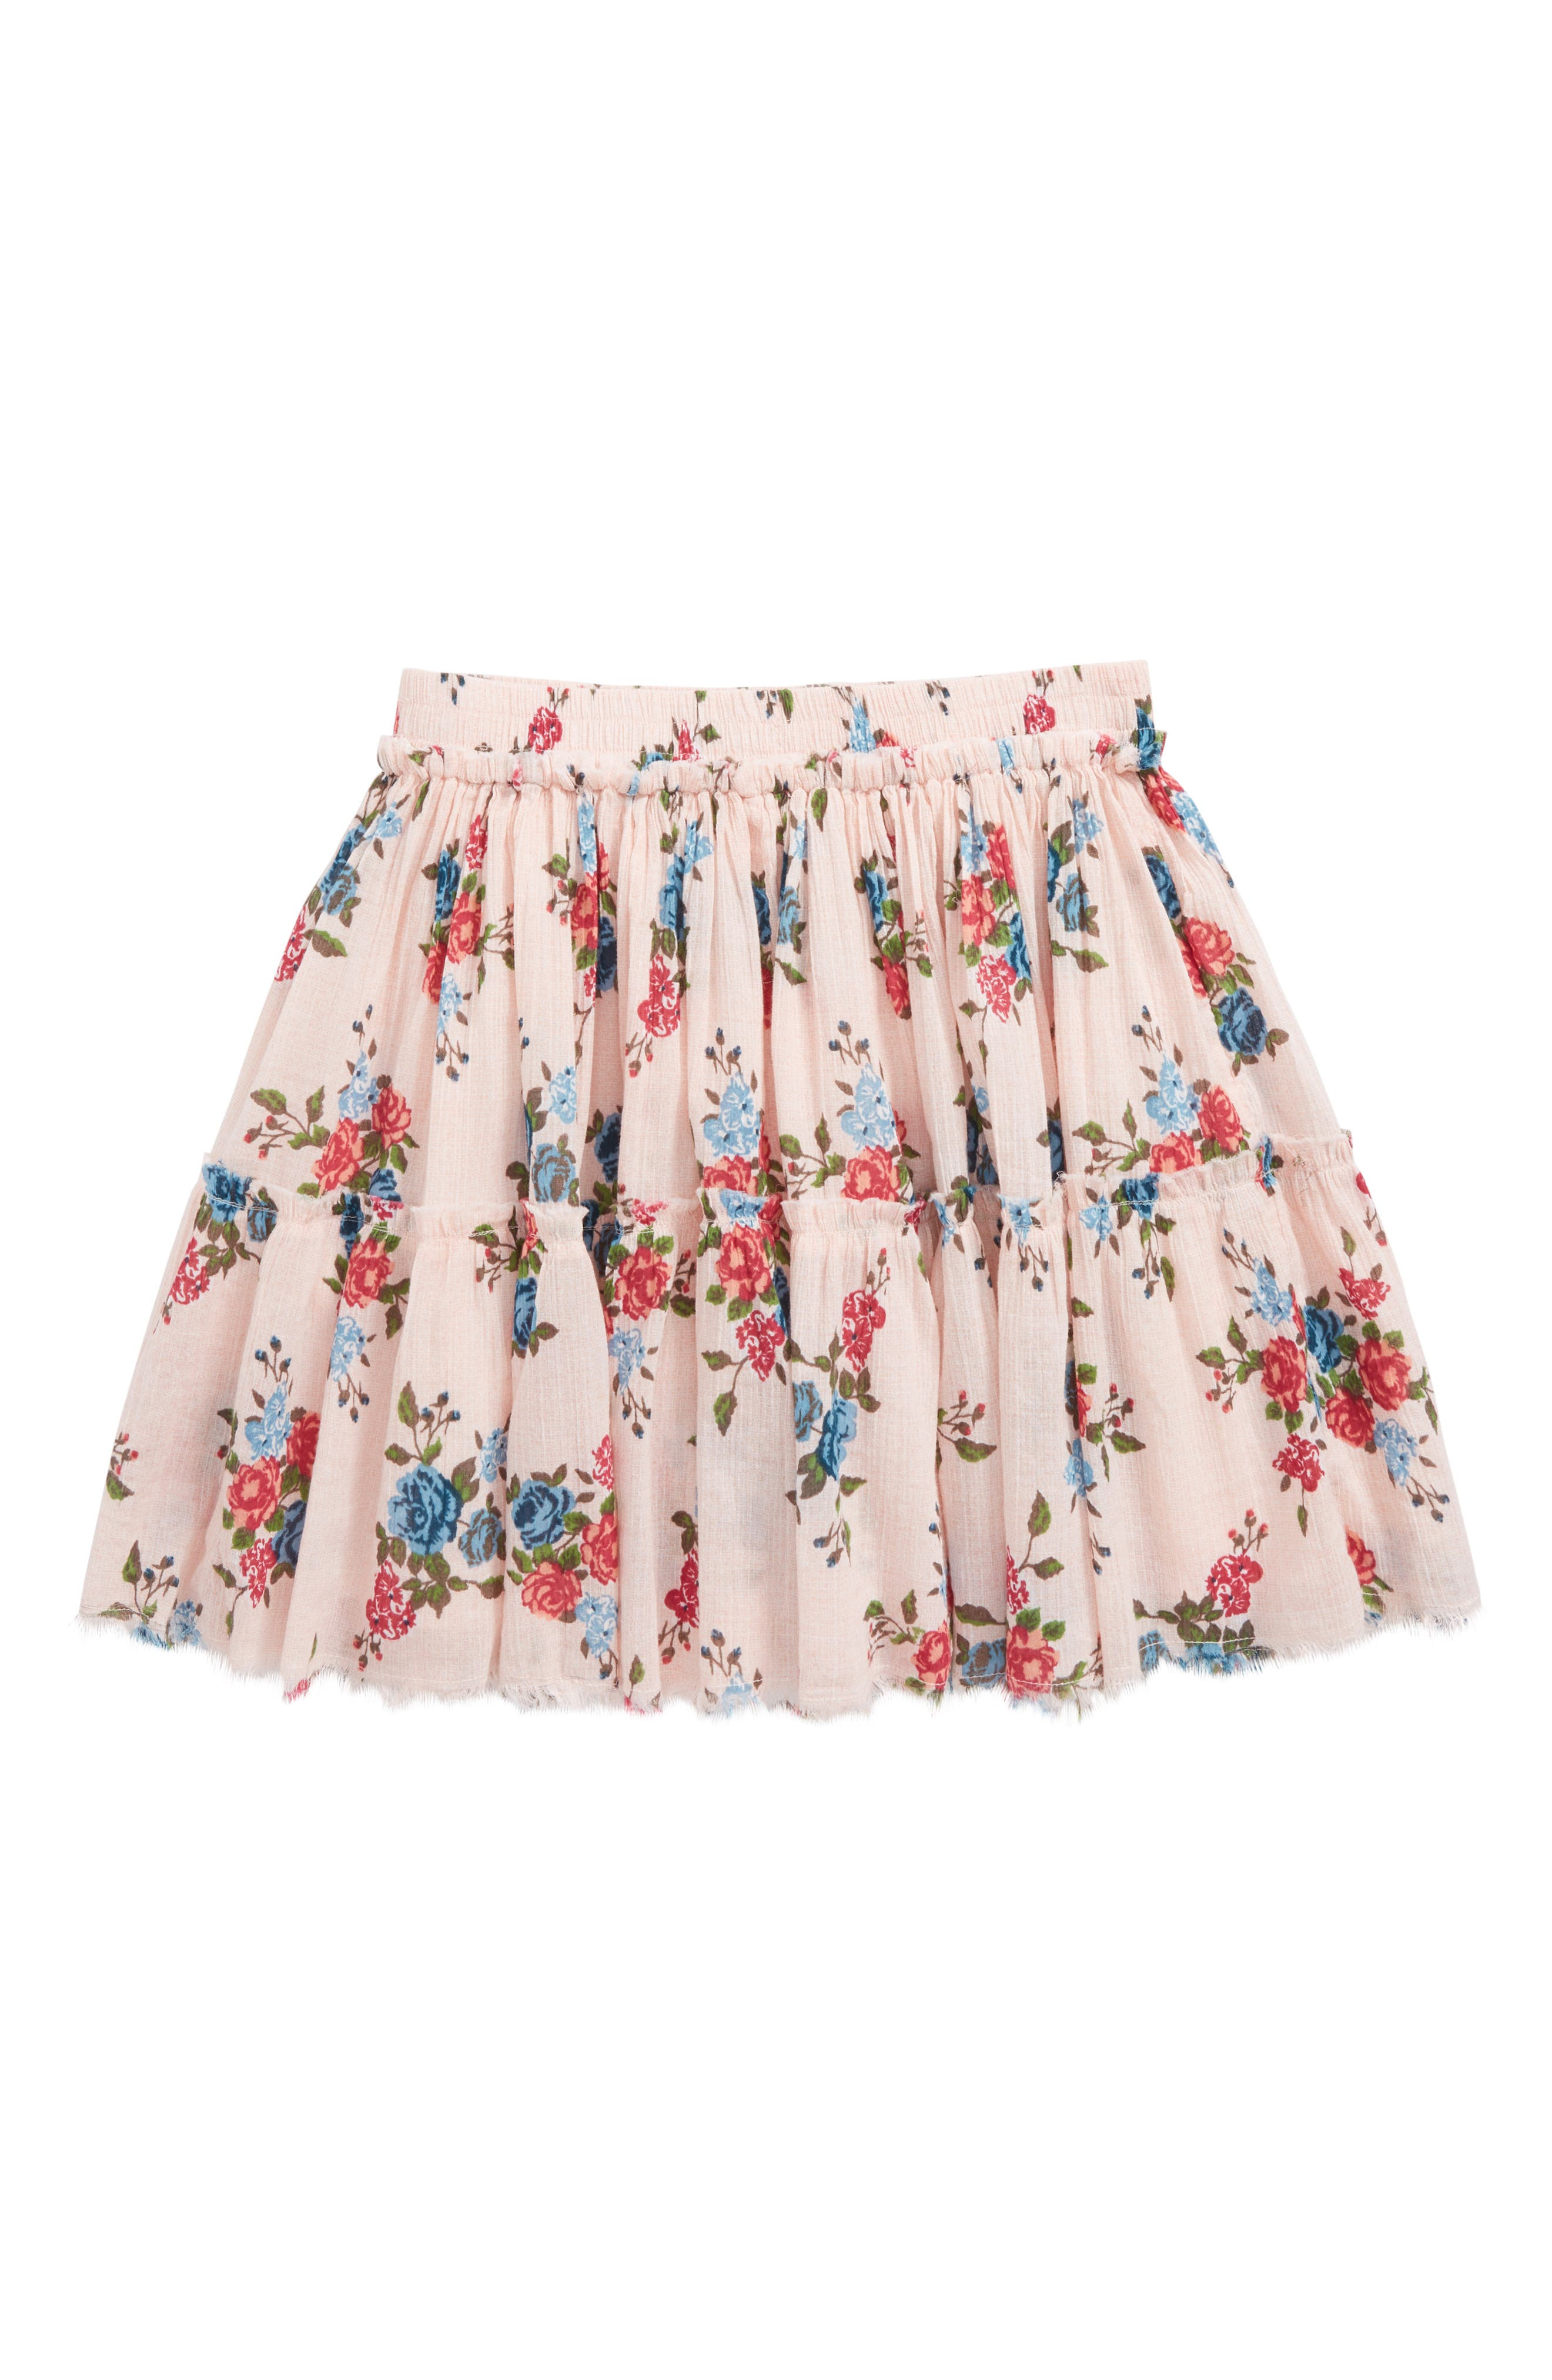 Floral Frayed Ruffle Hem Skirt,                         Main,                         color, Pink Peach Bunch Floral